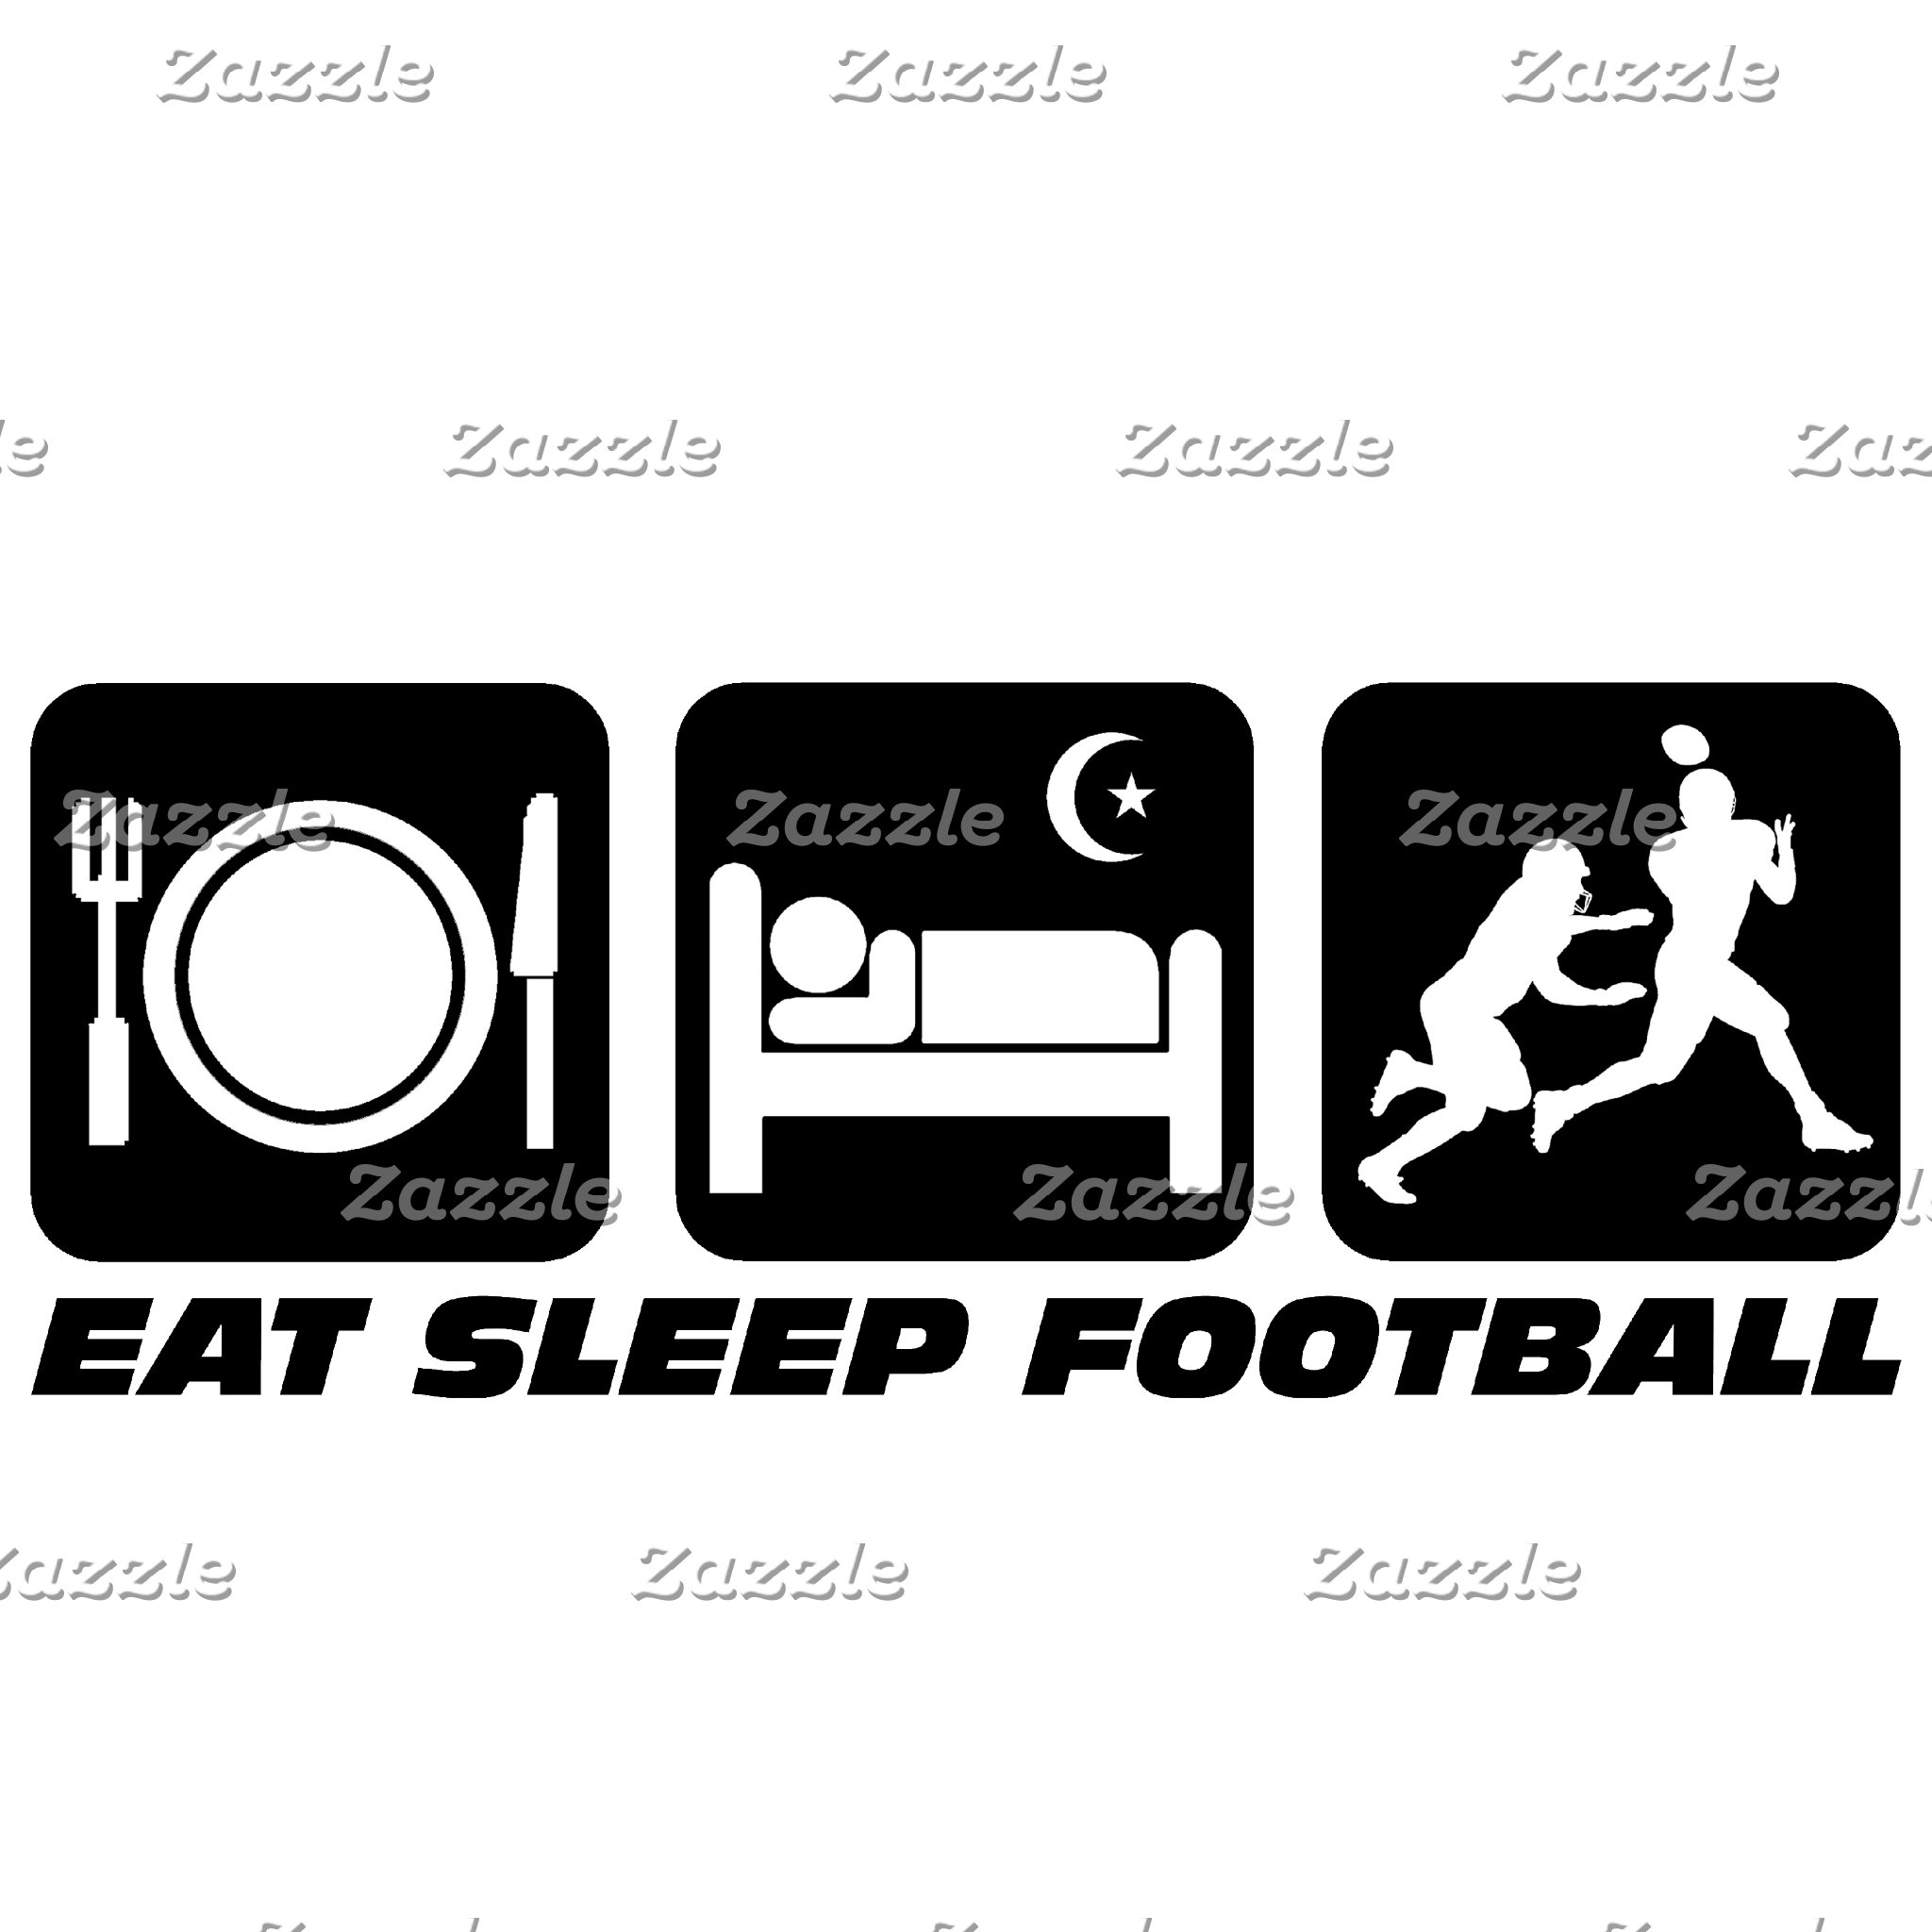 Eat sleep football